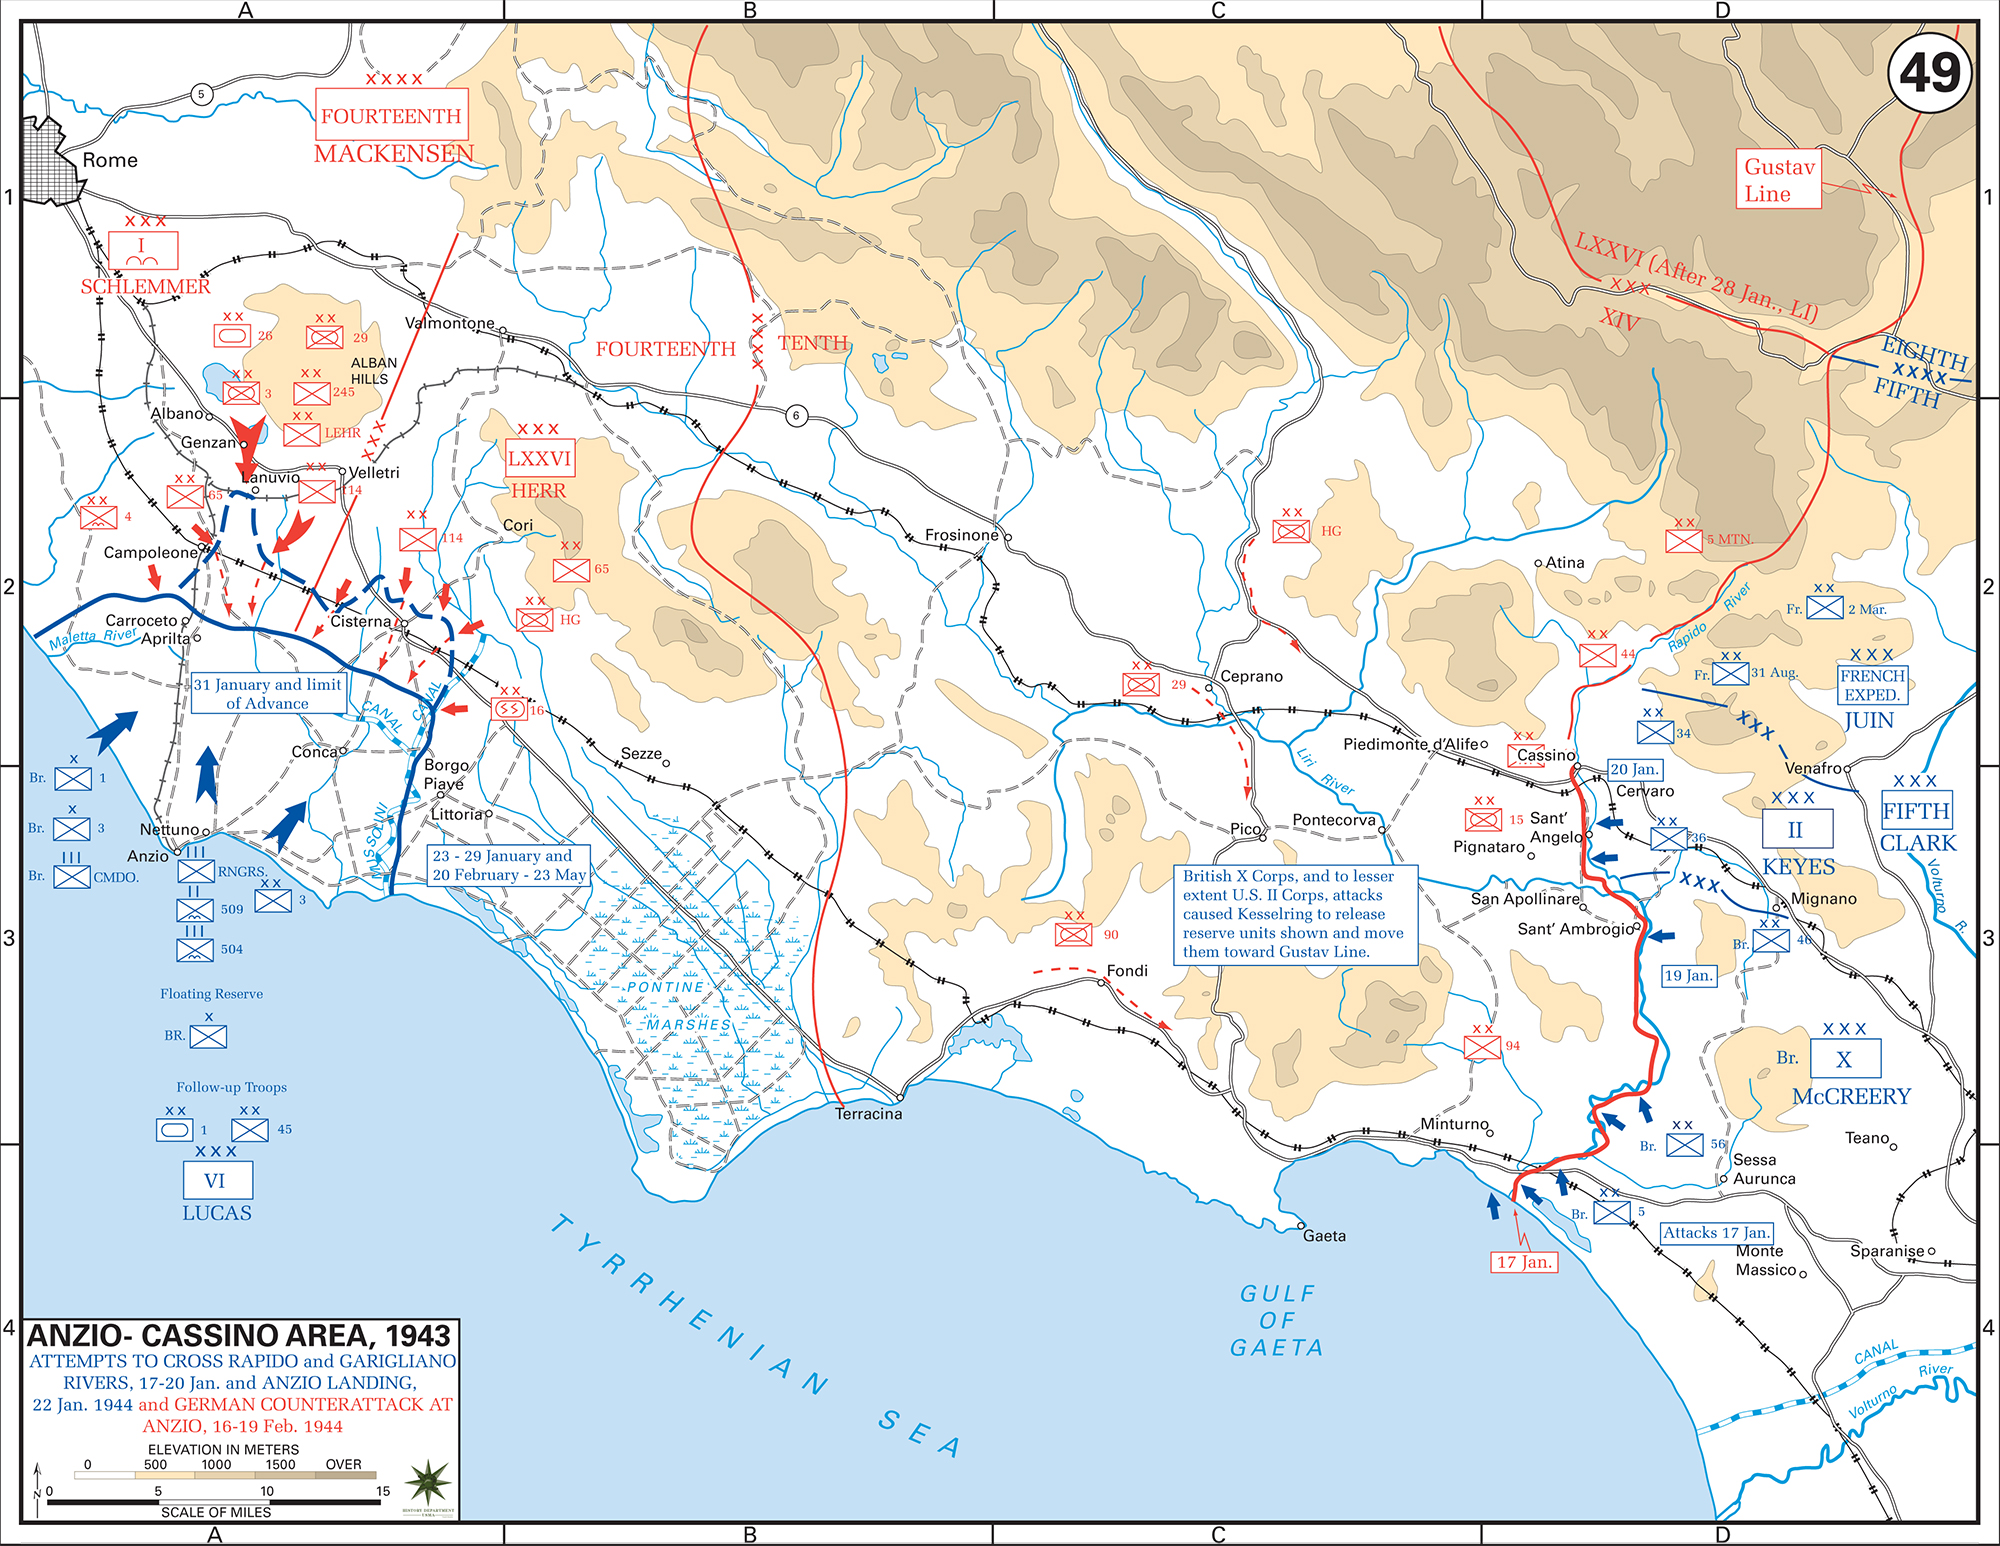 Map of WWII Italy, Anzio-Cassino Region, January 17 - February 19, 1944